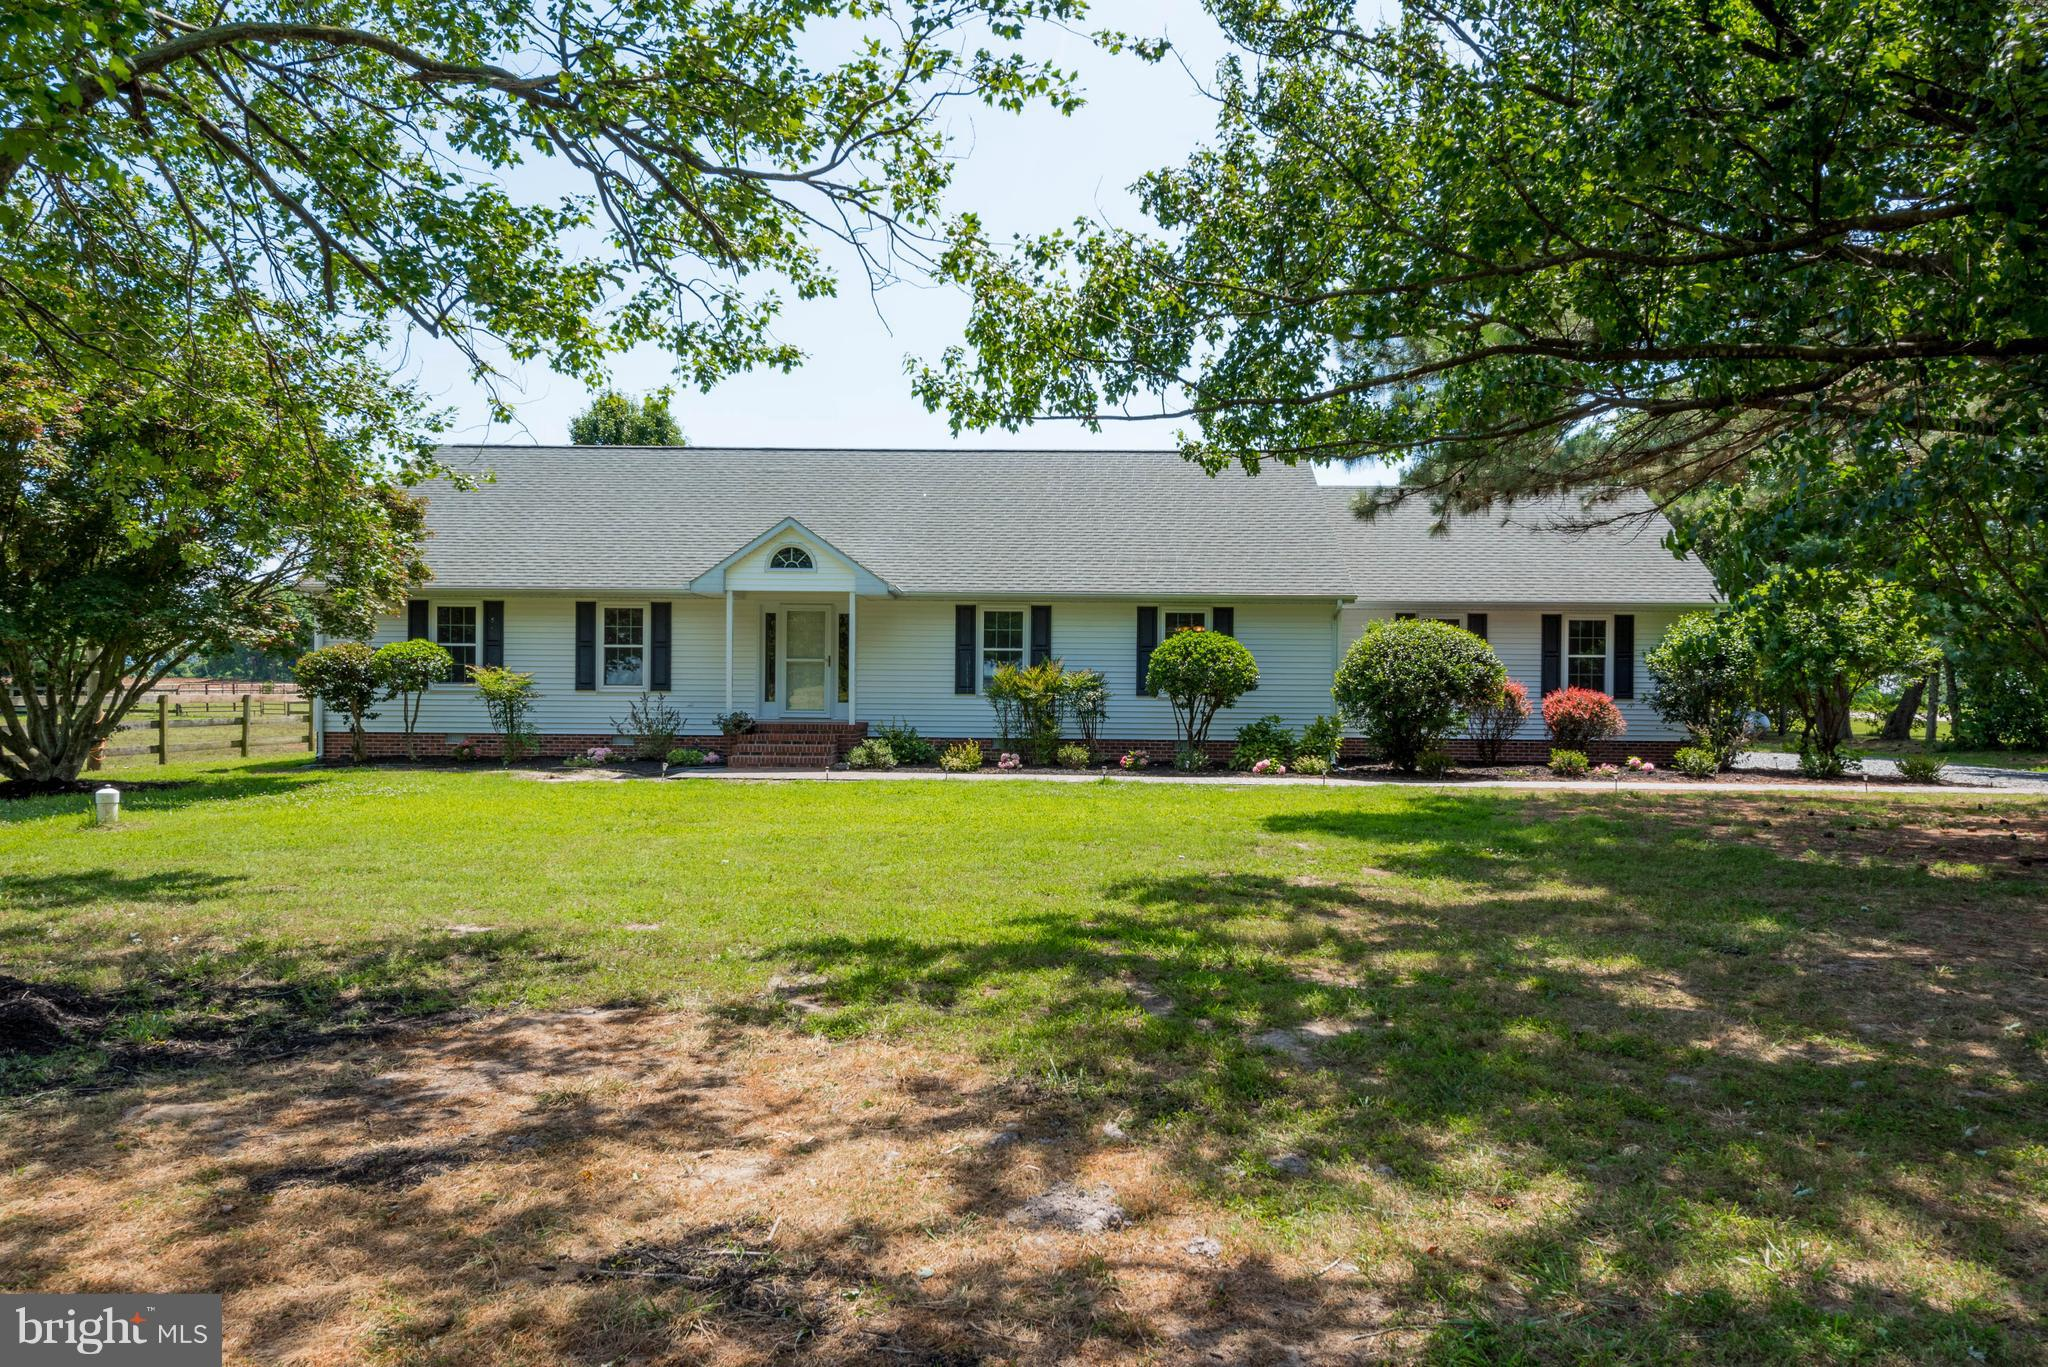 ~WELCOME HOME  to this wonderful 12 acre farm with a custom built 3400 + sq. ft. ranch style home.